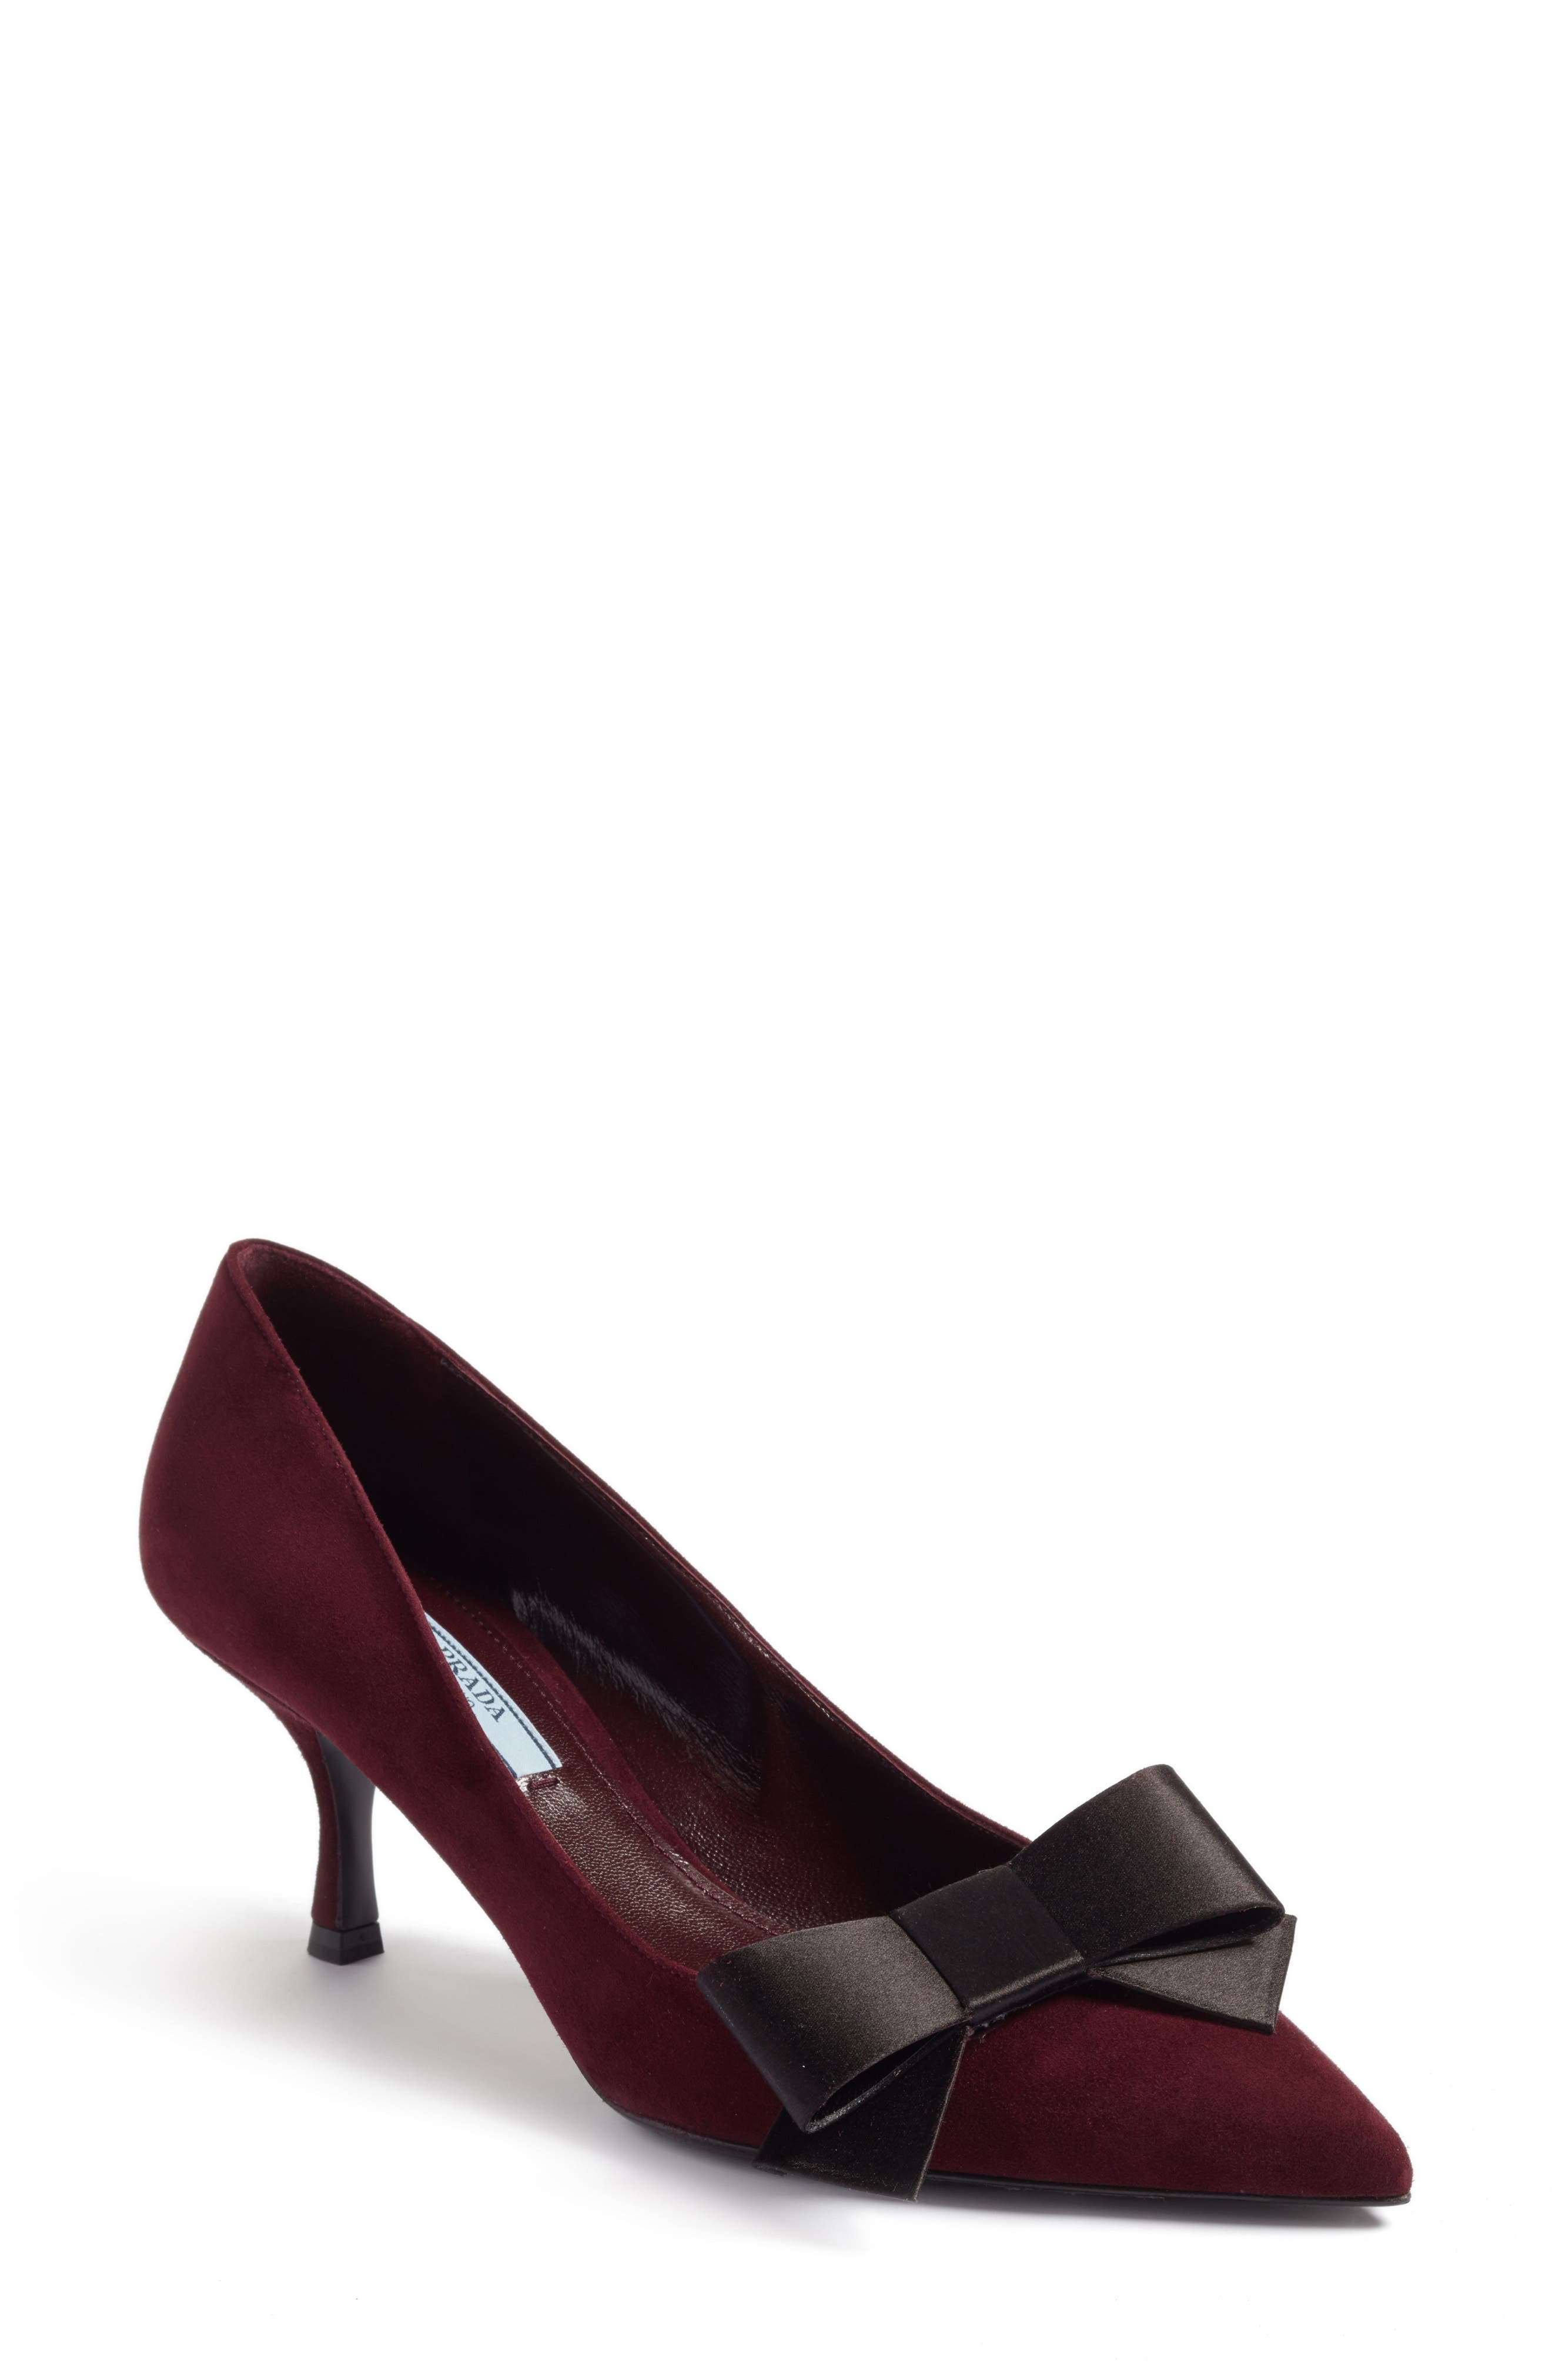 Main Image - Prada Bow Pointy Toe Pump (Women)